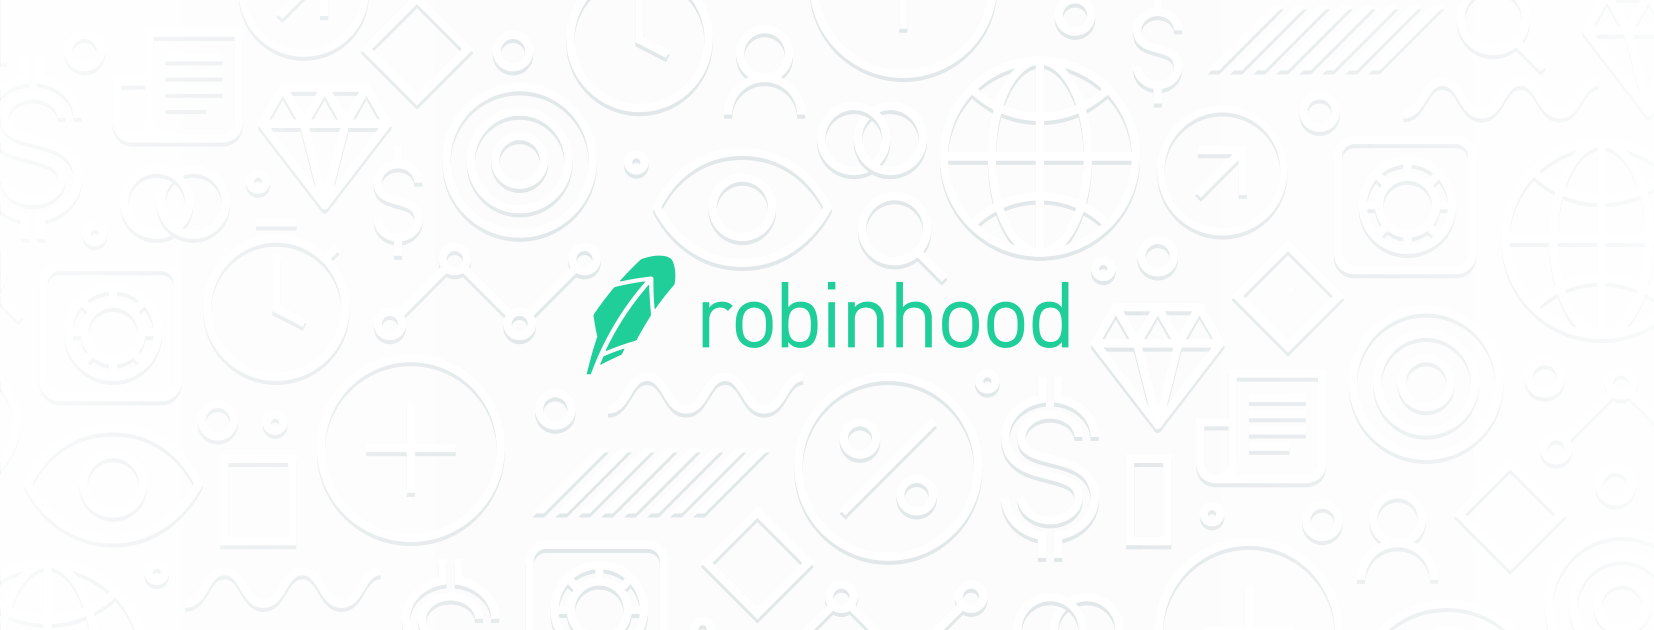 Robinhood Featured Image